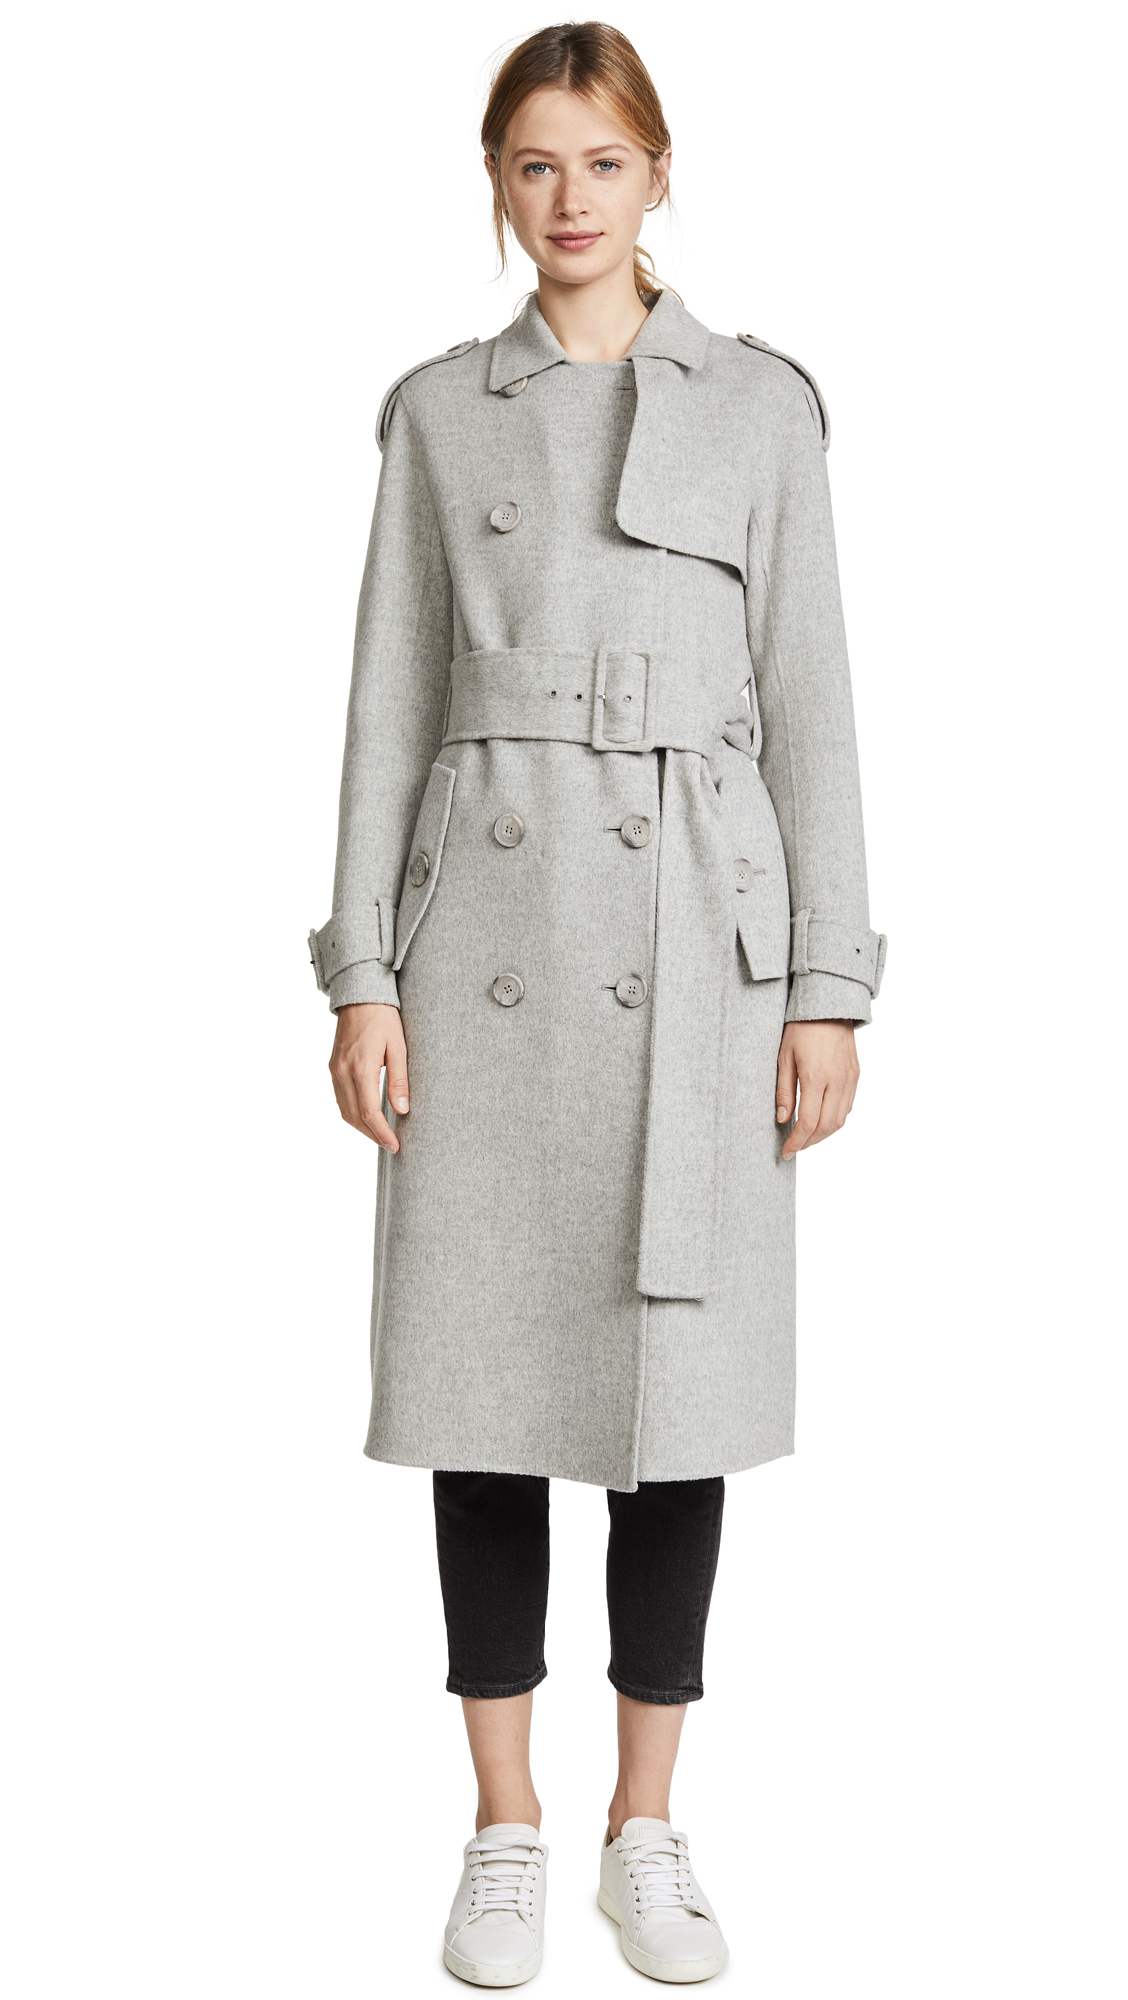 Theory Statement Trench Coat - Melange Grey